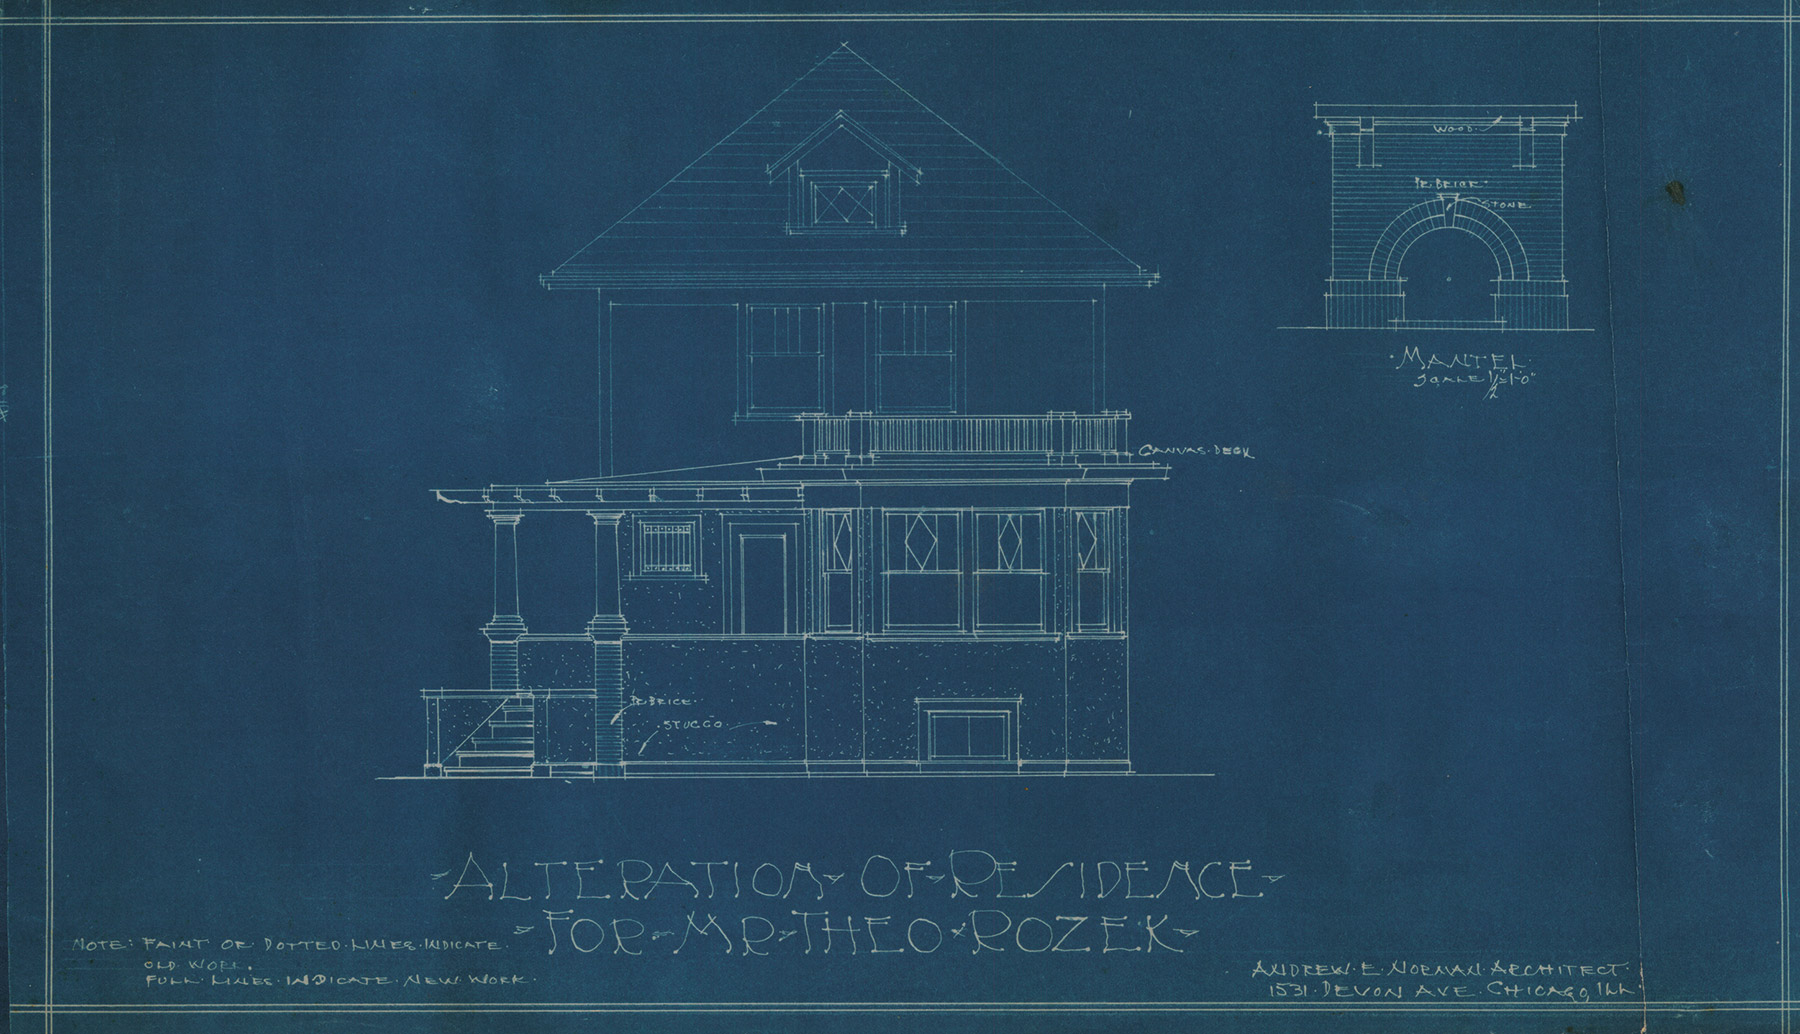 Andrew E. Norman designed a front addition for the Rozek House in the late 1920s. Courtesy of Julia Bachrach.